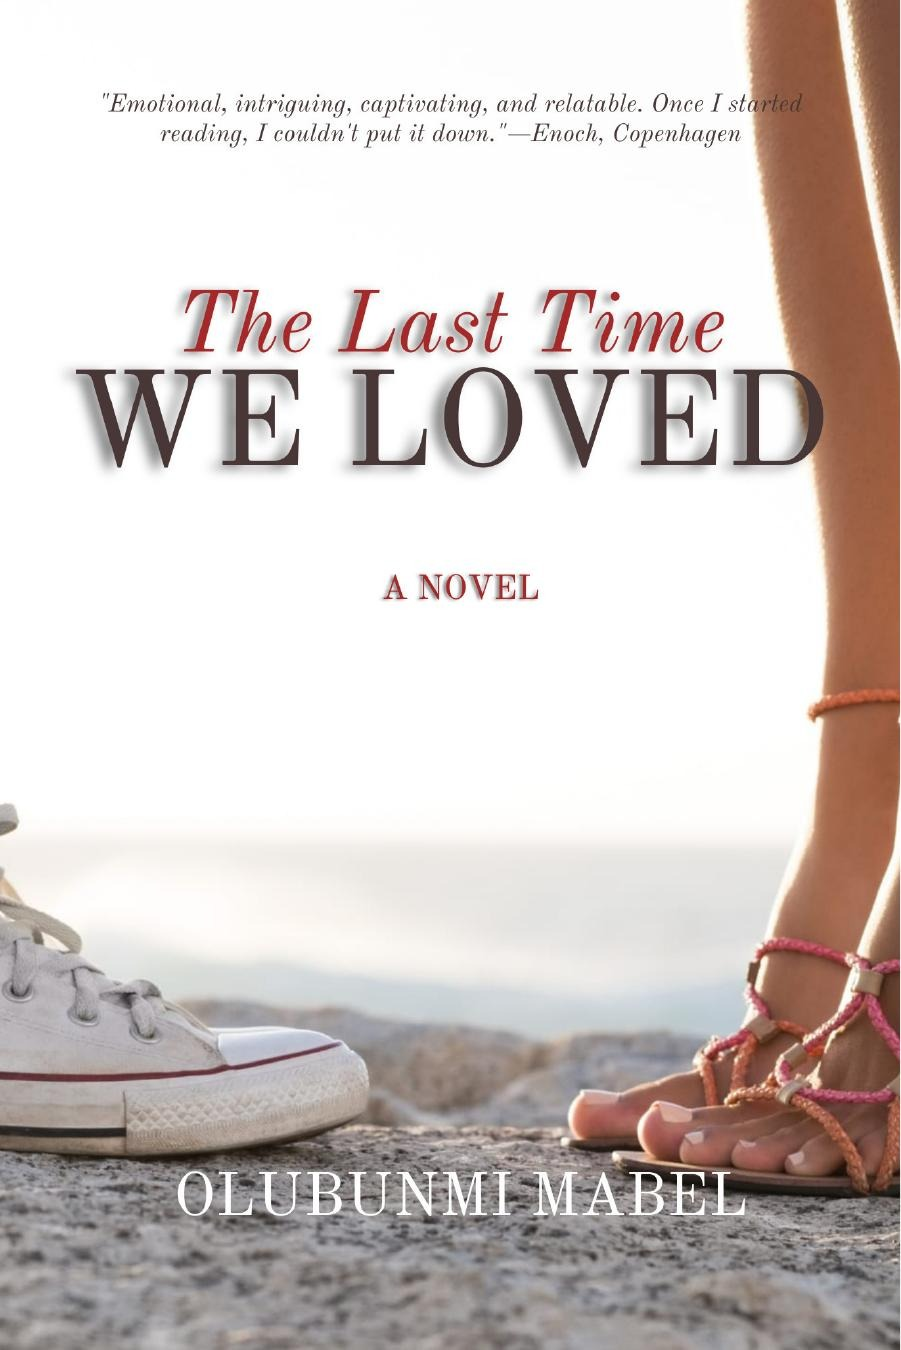 The Last Time We Loved